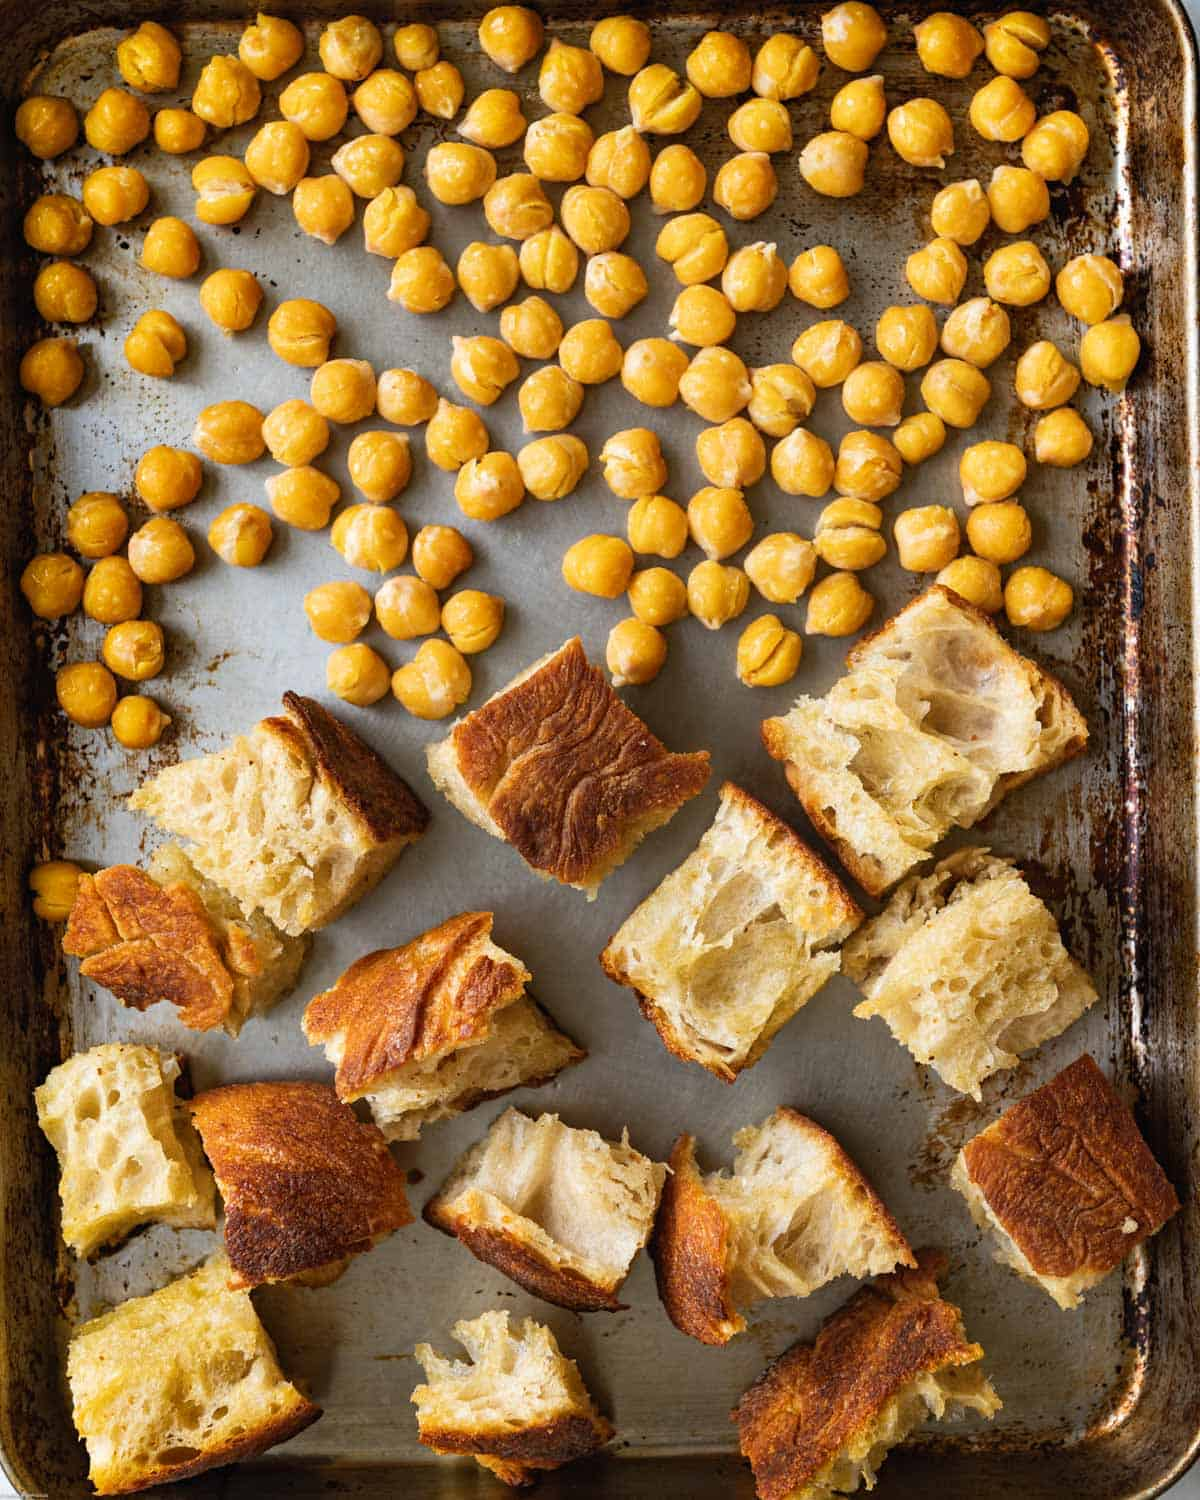 Baked ciabatta bread and chickpeas on a large baking sheet.